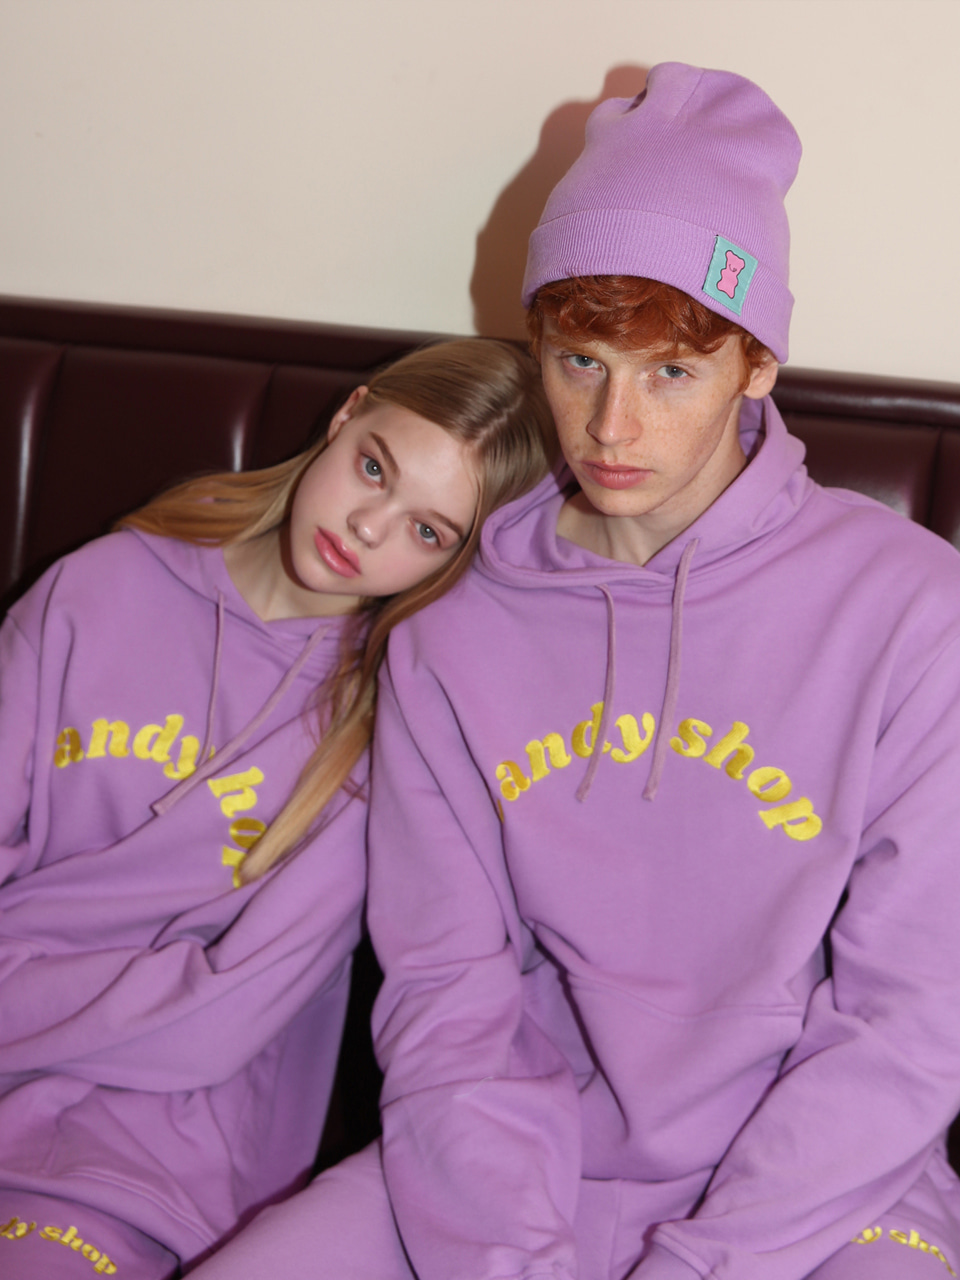 [10%SALE] Candy shop logo hood - PURPLE